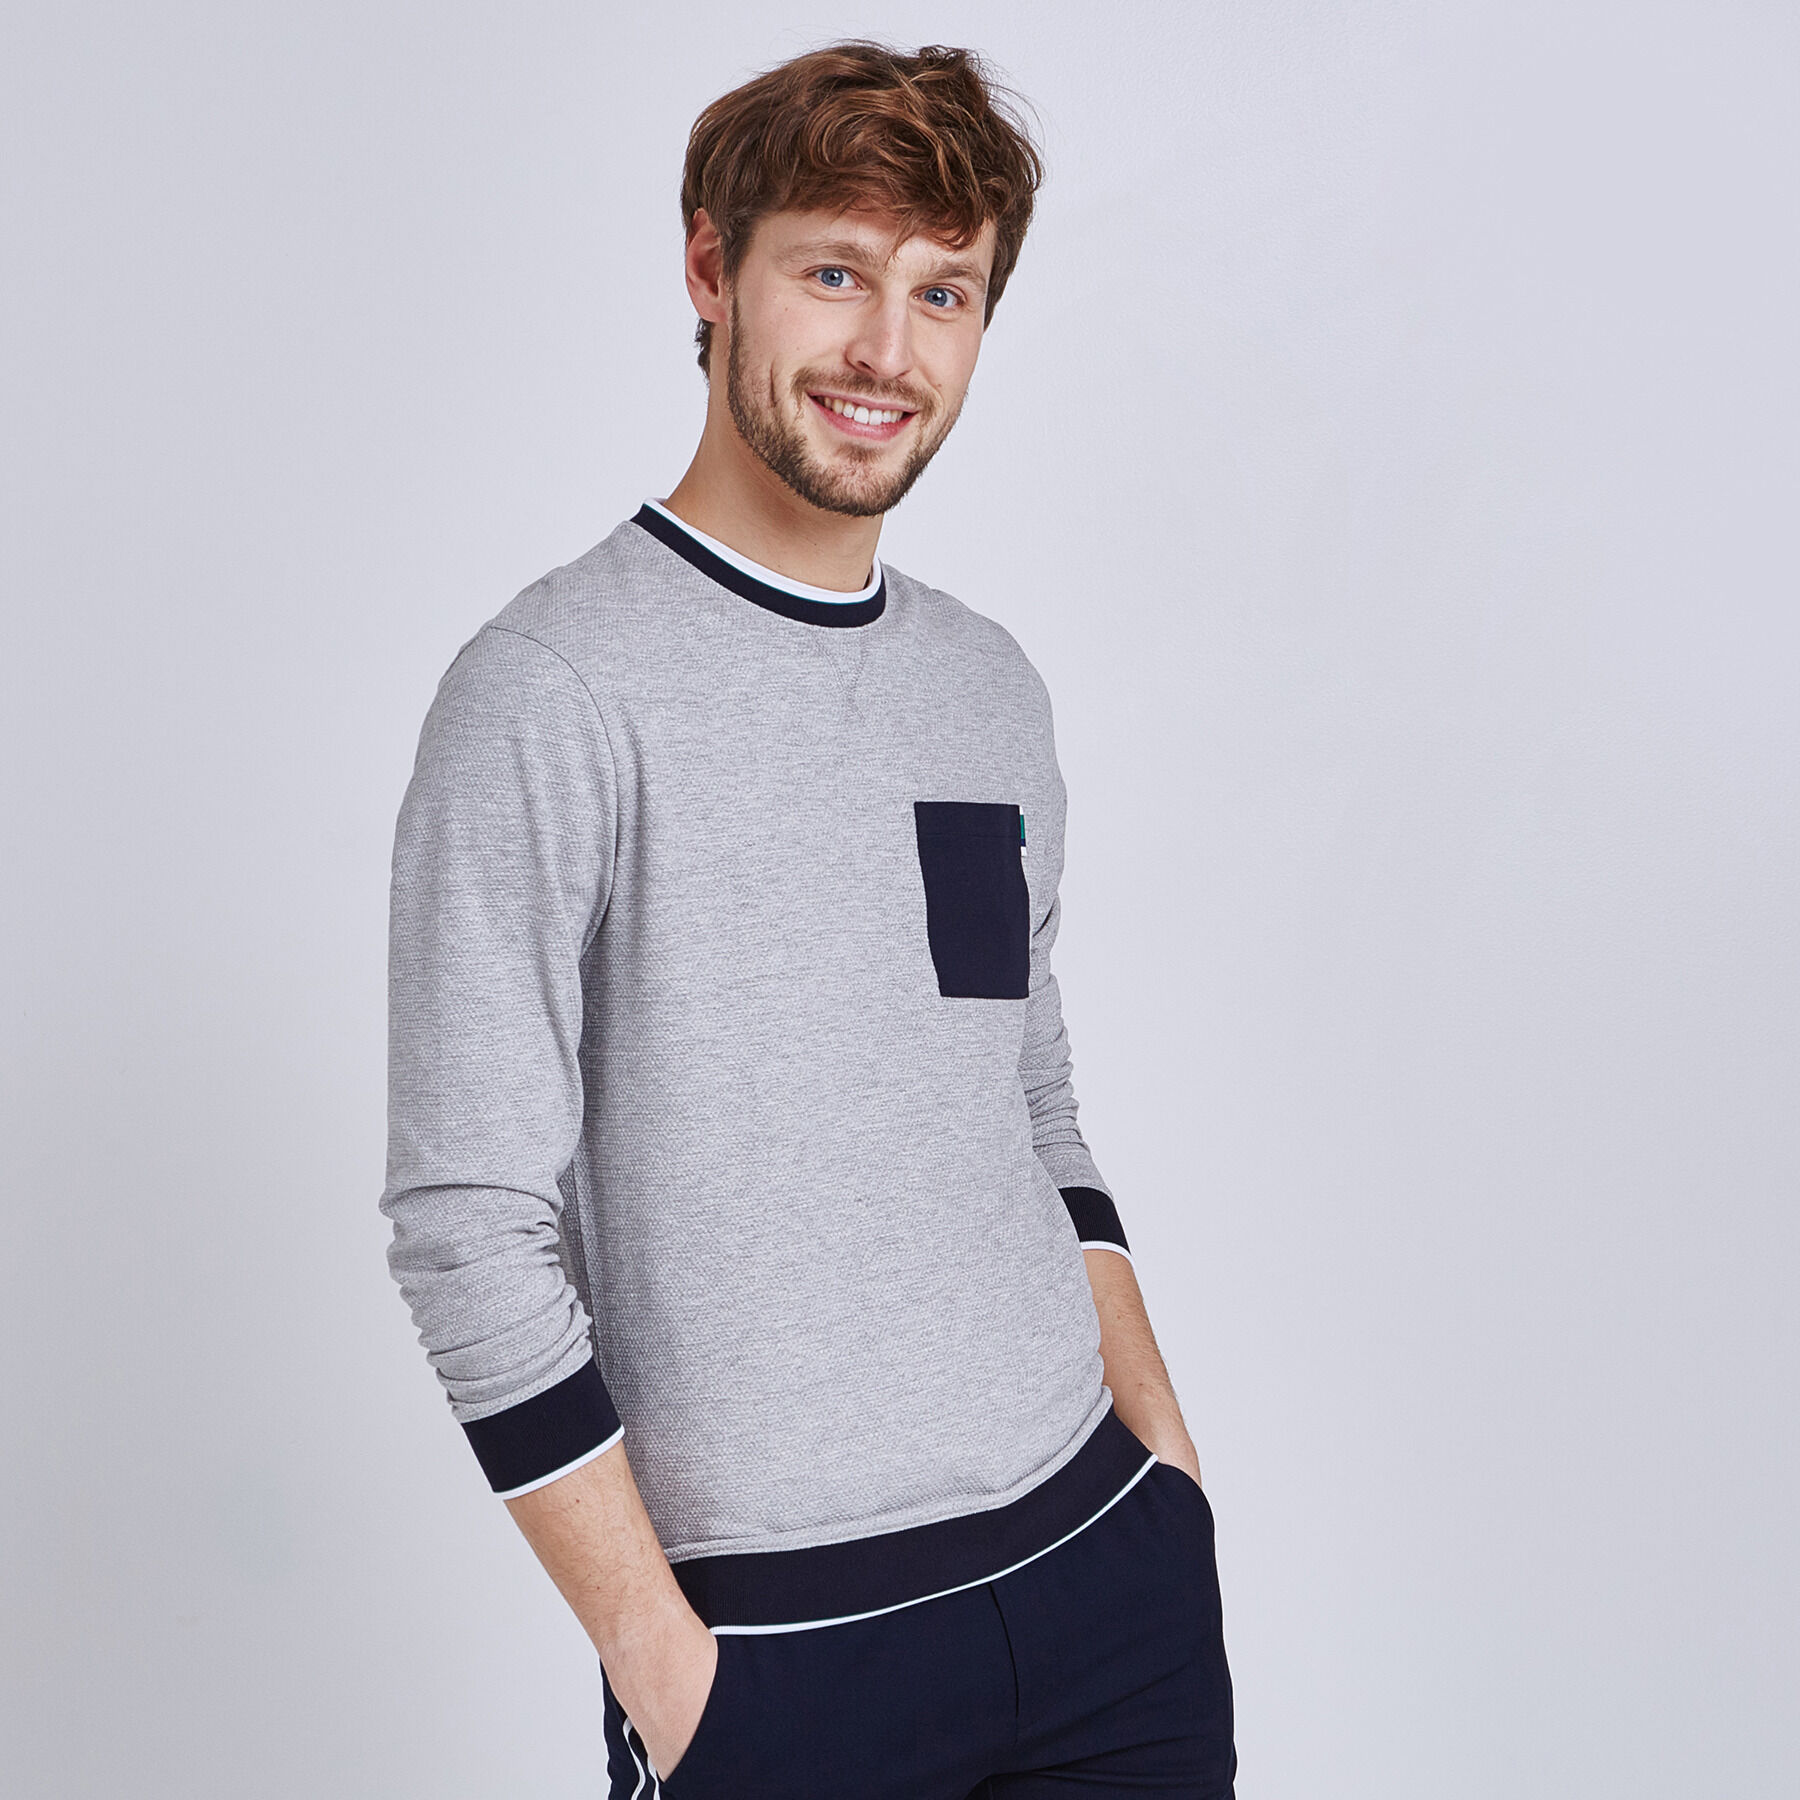 À Tee Longues Manches Rond Poche Shirt Col wUOxUqf6p